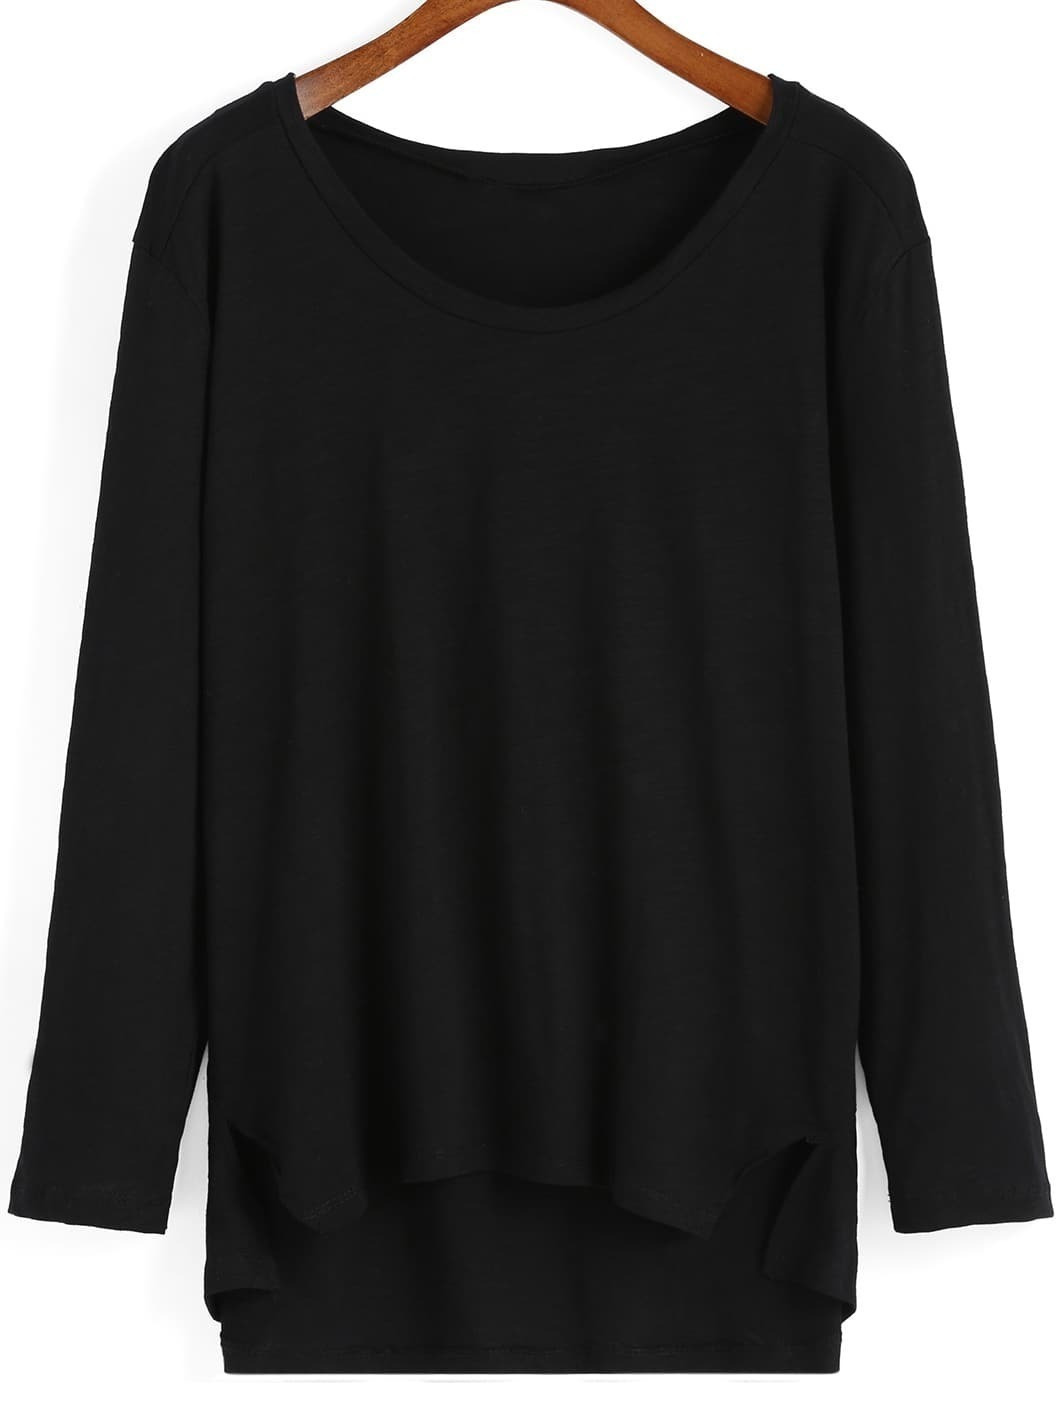 Black Round Neck Dip Hem T-Shirt